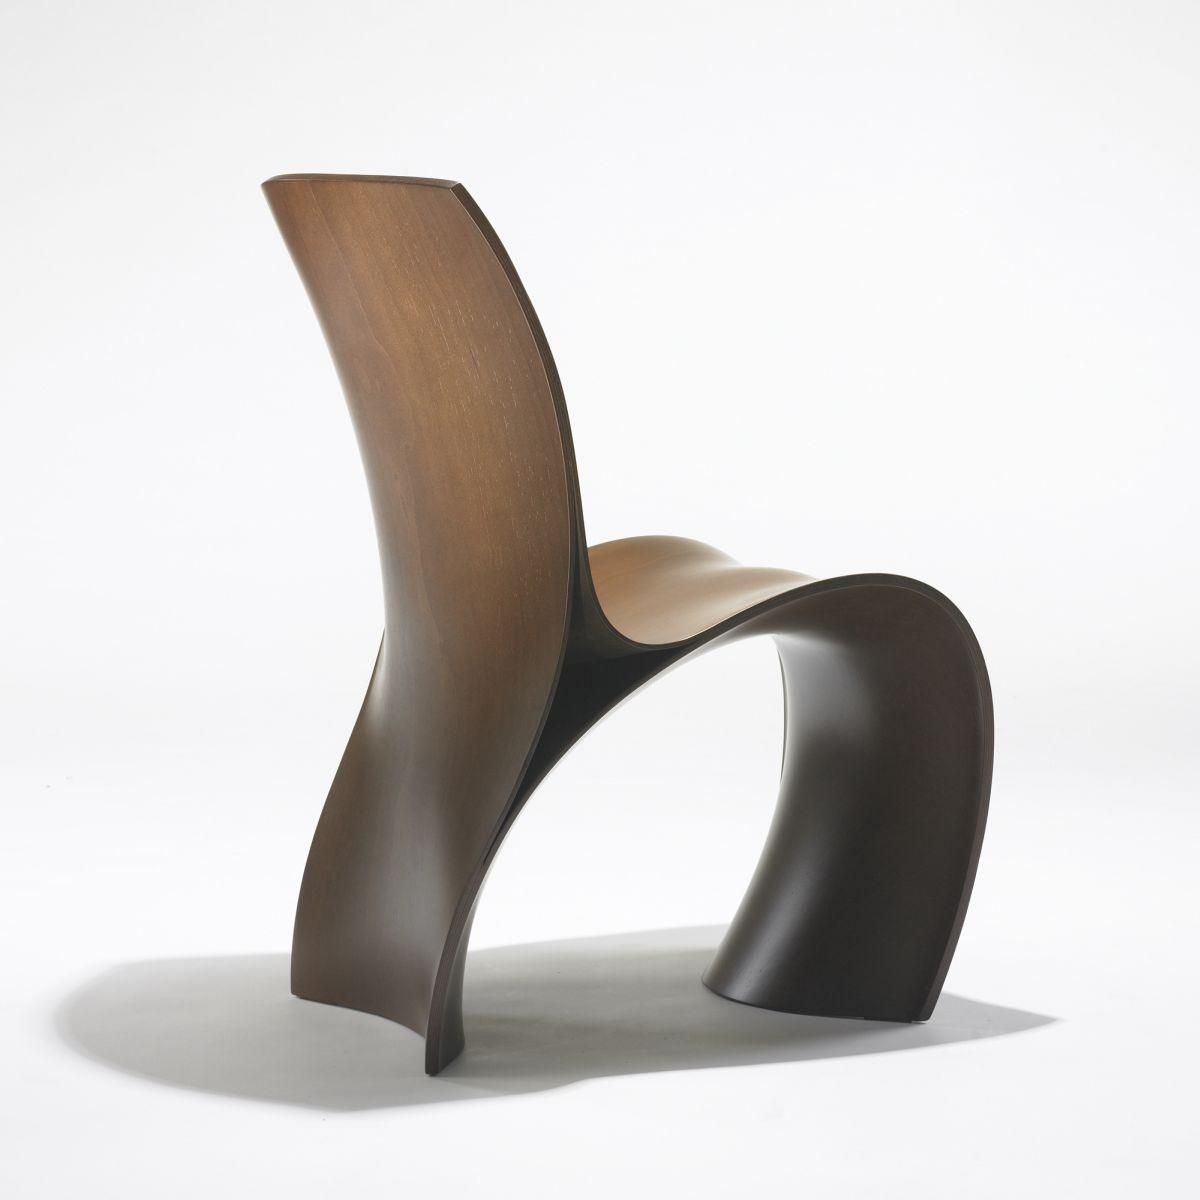 Chair Furniture Design: Ron Arad, Industrial And